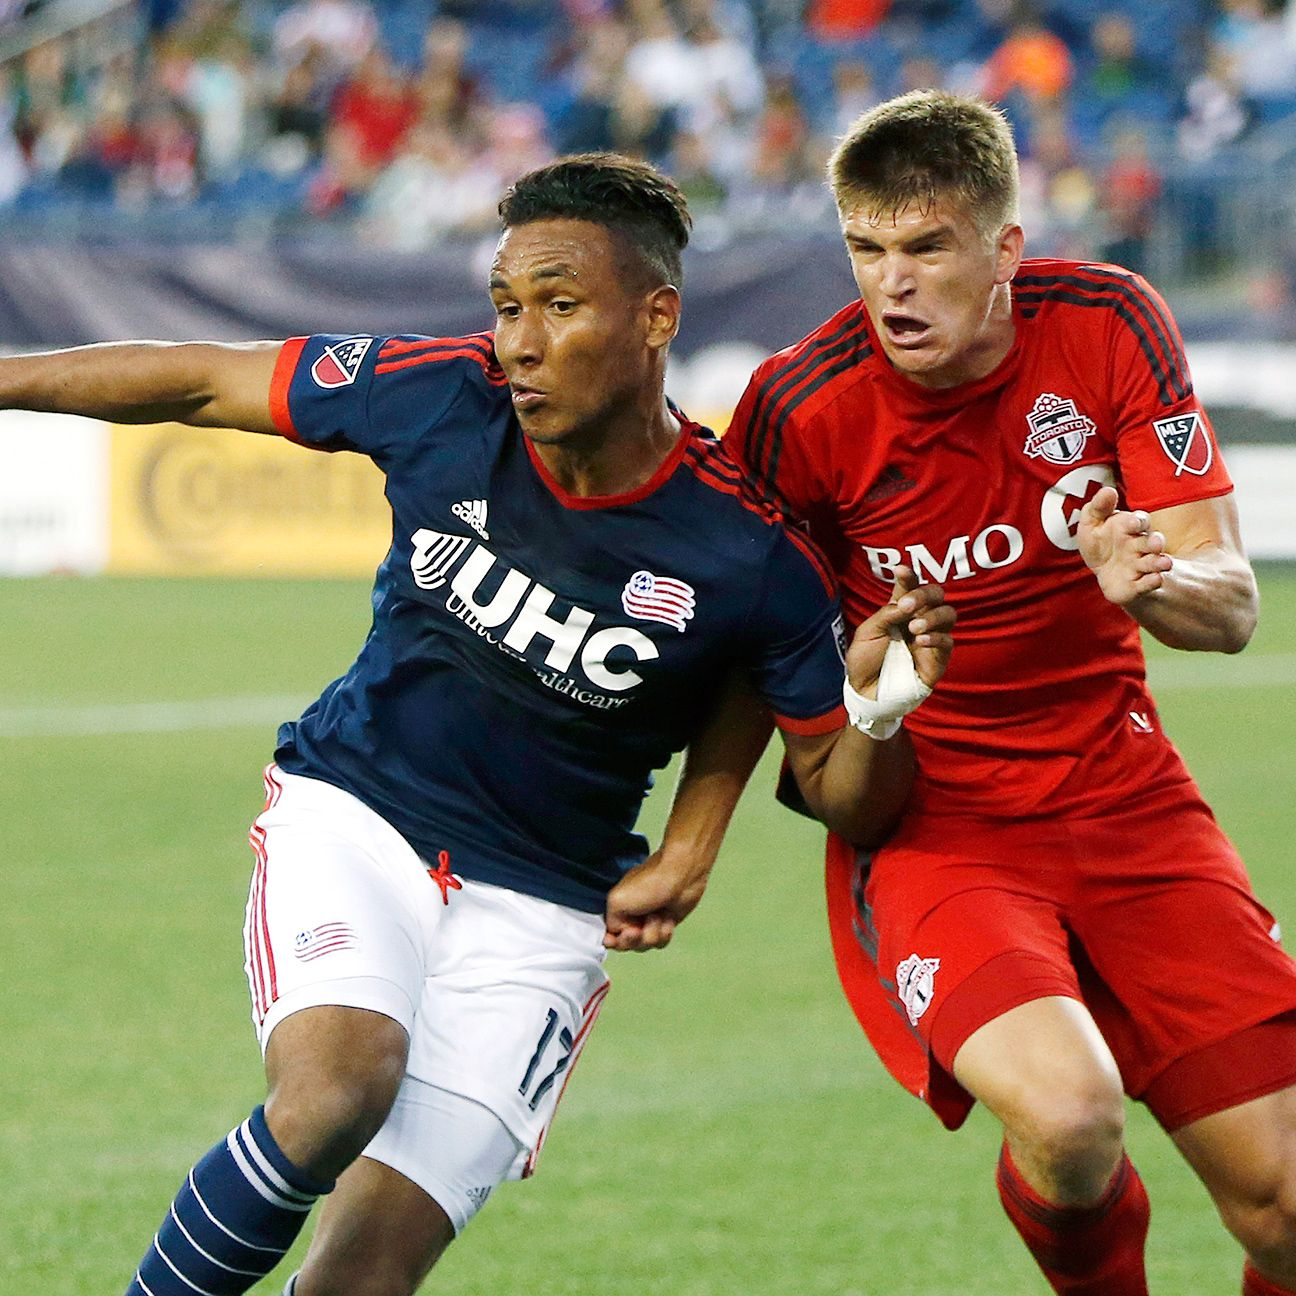 Toronto FC's Nick Hagglund (right) and the Revs' Juan Agudelo (17) battle for the ball during the first half.